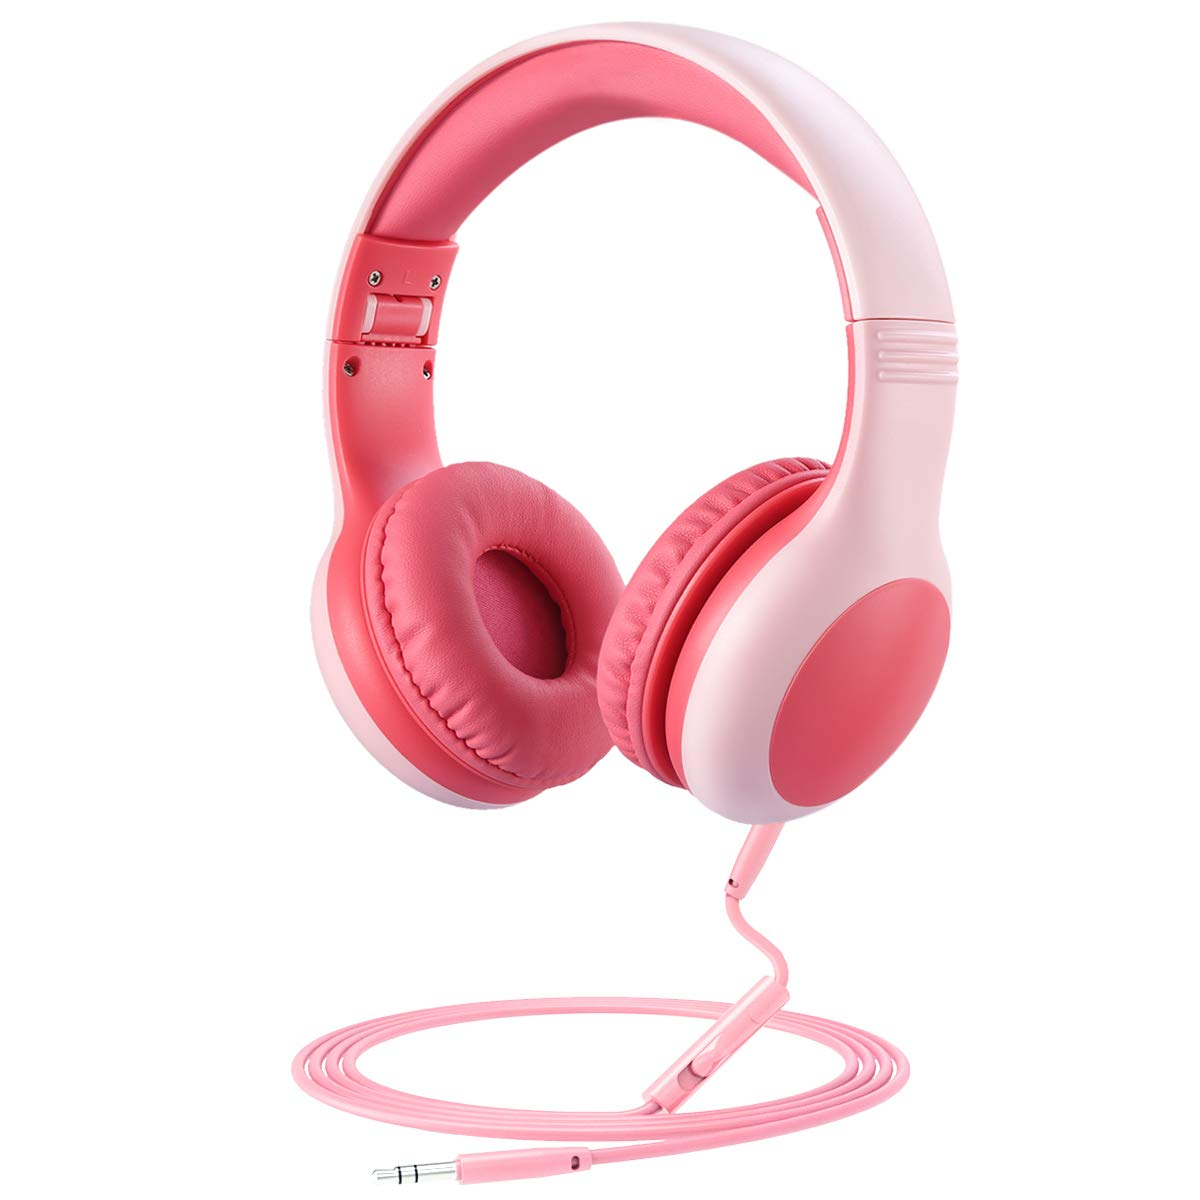 KeeKit Kids Headphones, Noise Reduction School Headphones with Audio Sharing Function, Volume Limited Hearing Protection Wired On-Ear Headsets with Tangle-Free Cord for Children, Girls, Boys Pink